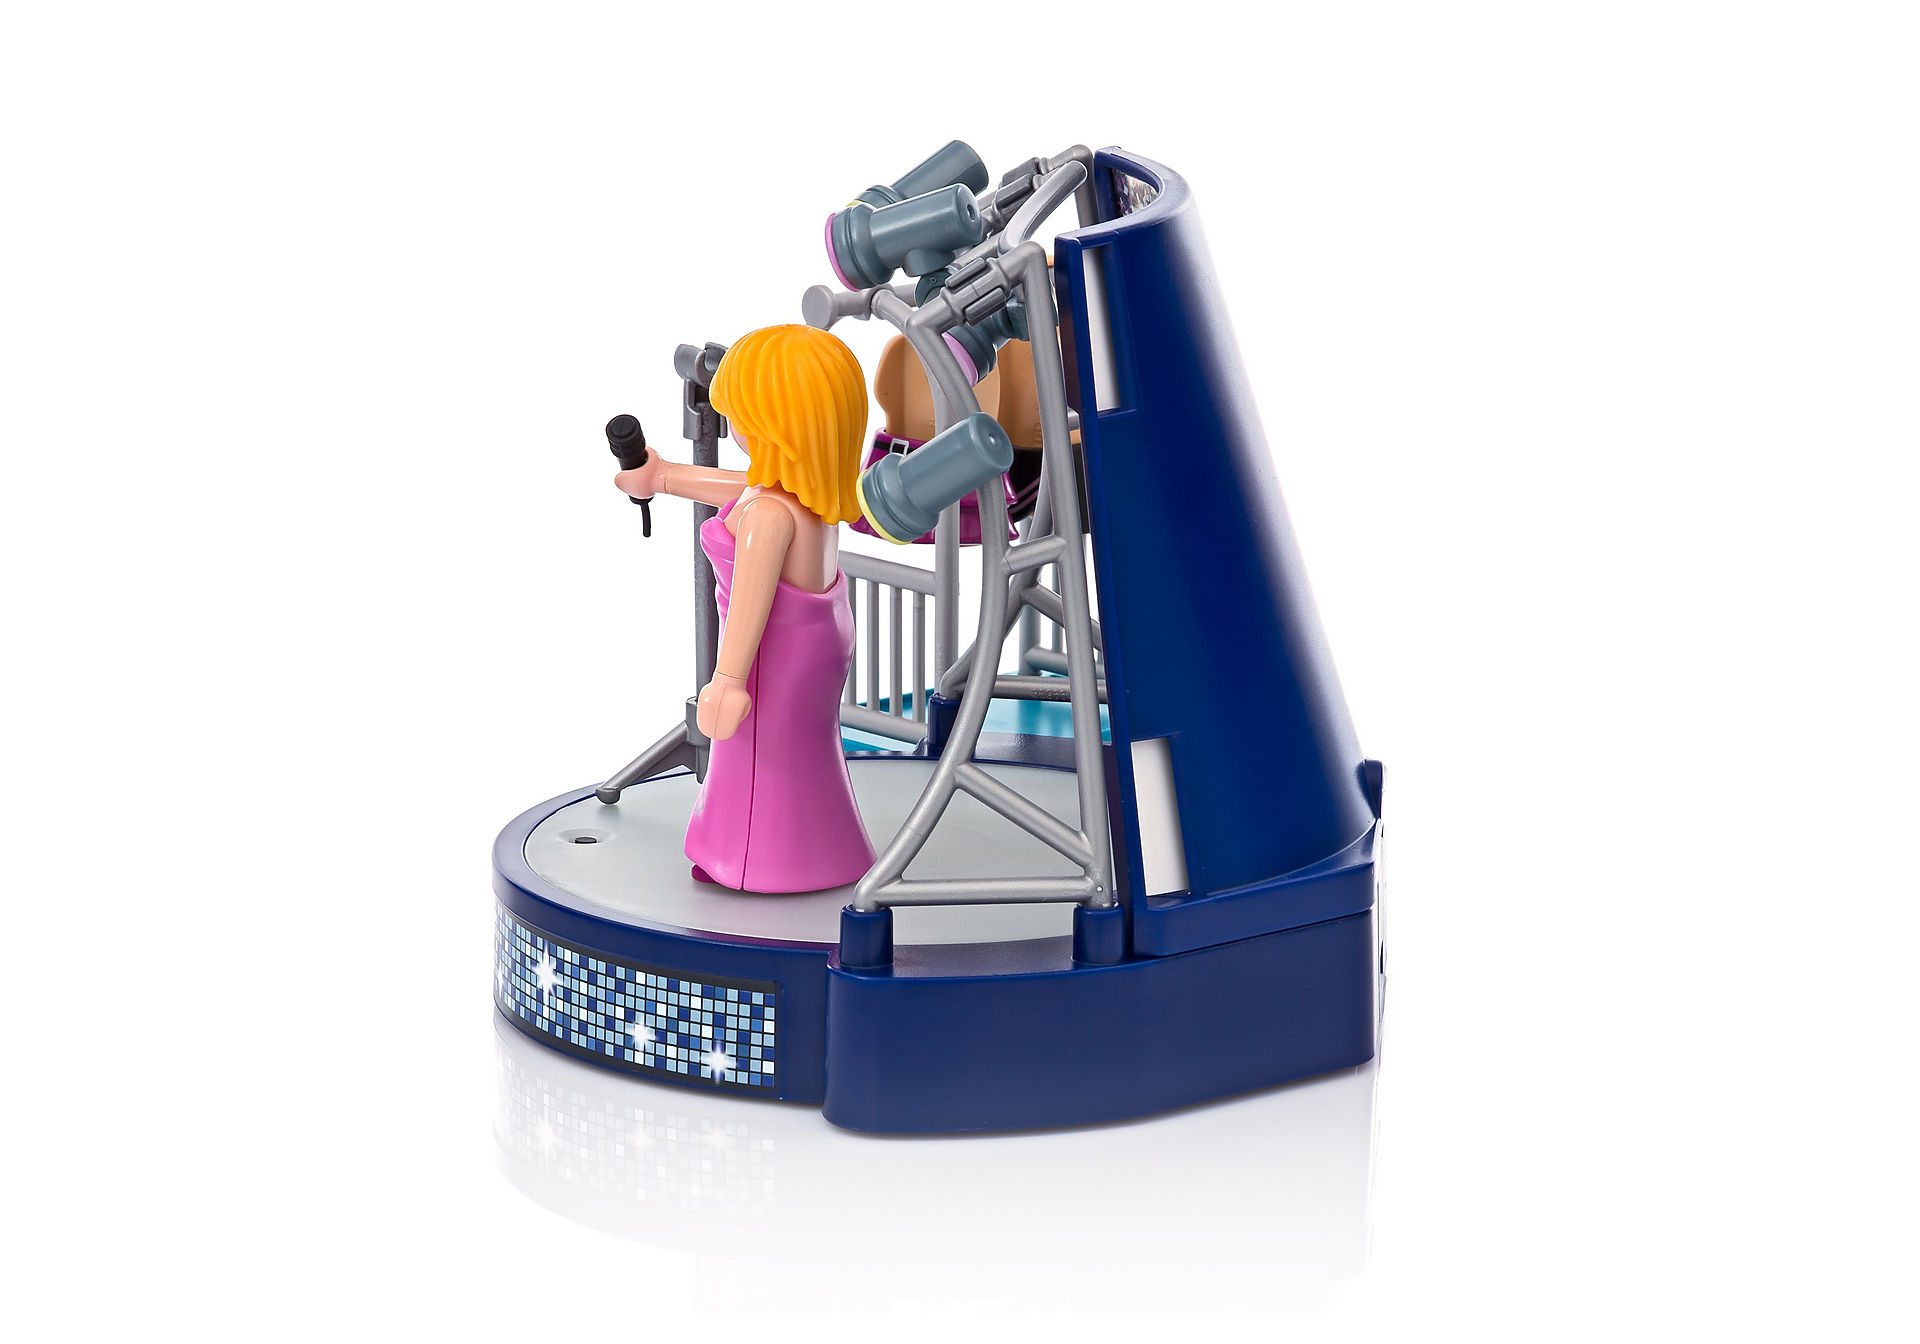 360degree image 12